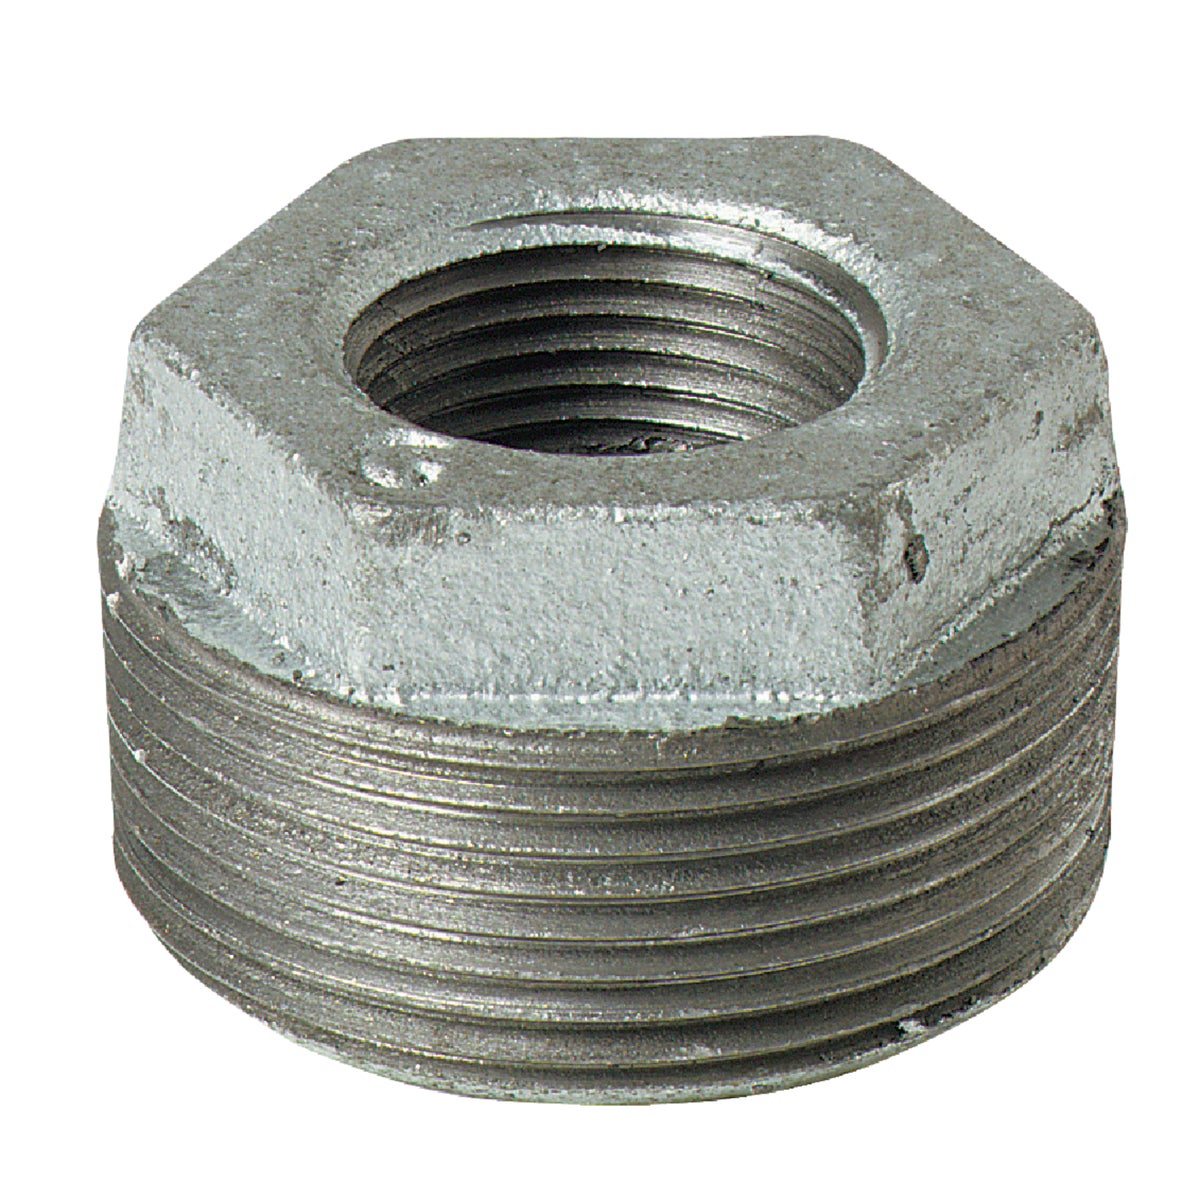 1-1/2X3/4 GALV BUSHING - 8700131108 by Anvil International